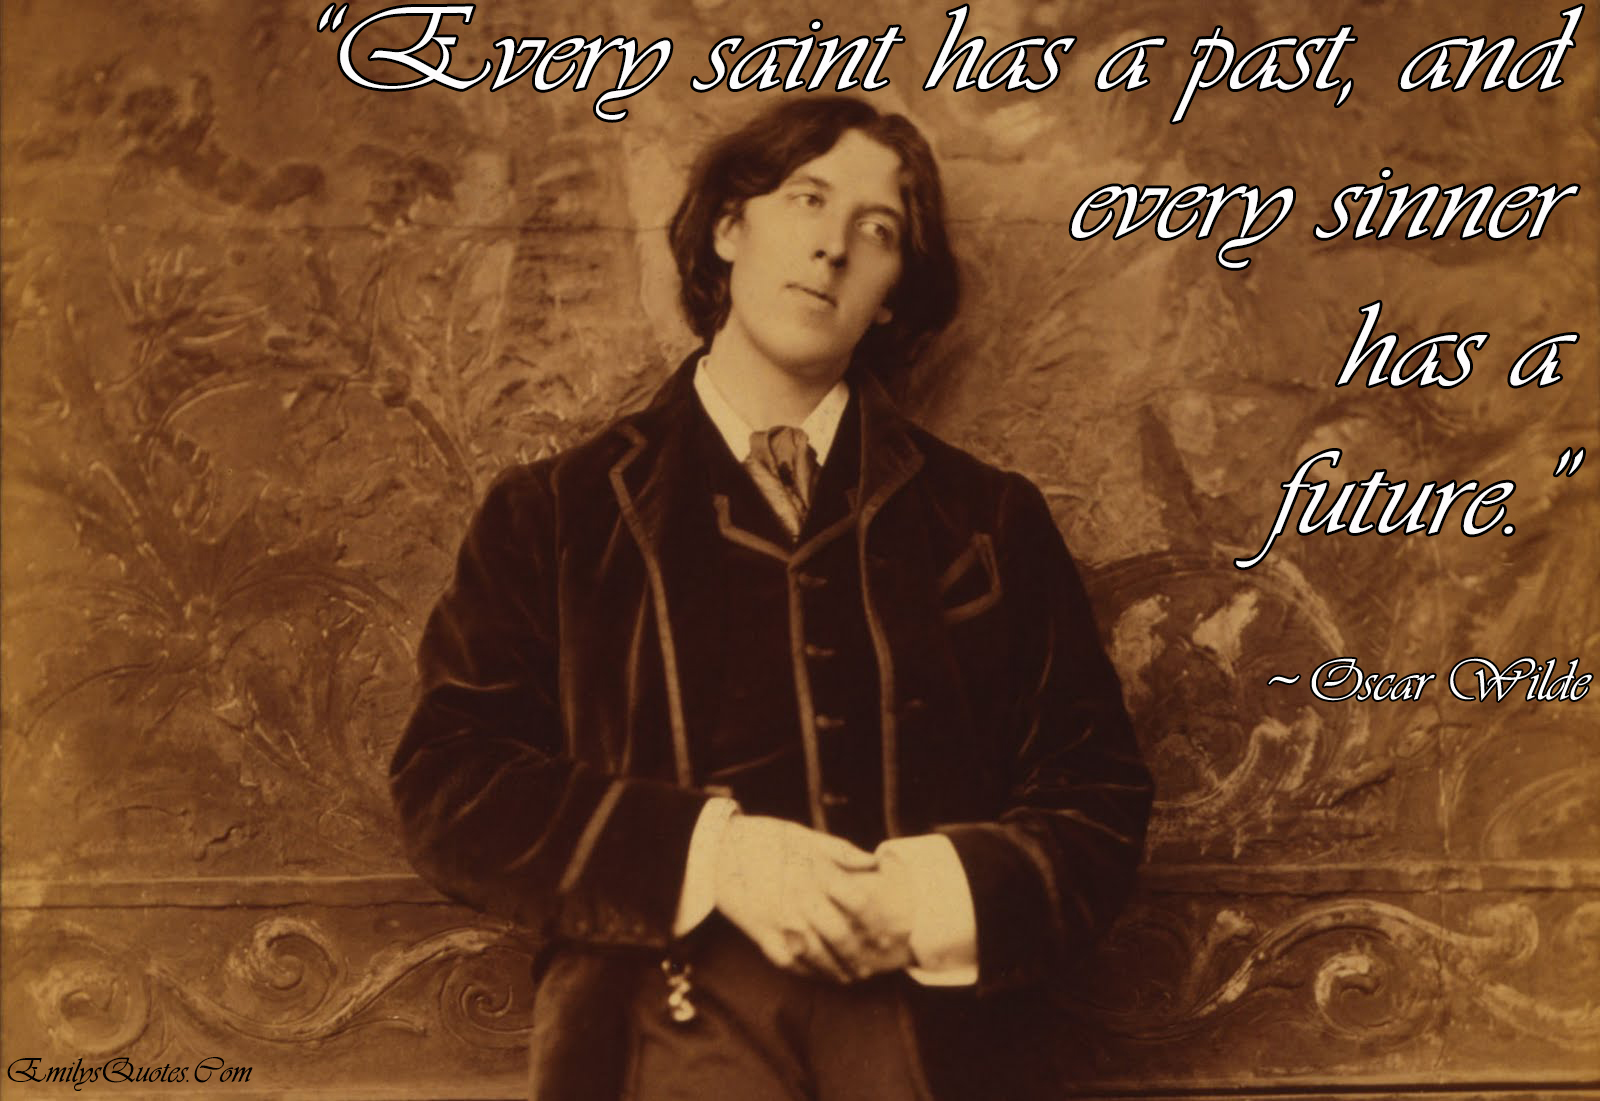 EmilysQuotes.Com - saint, past, sinner, future, intelligence,  Oscar Wilde